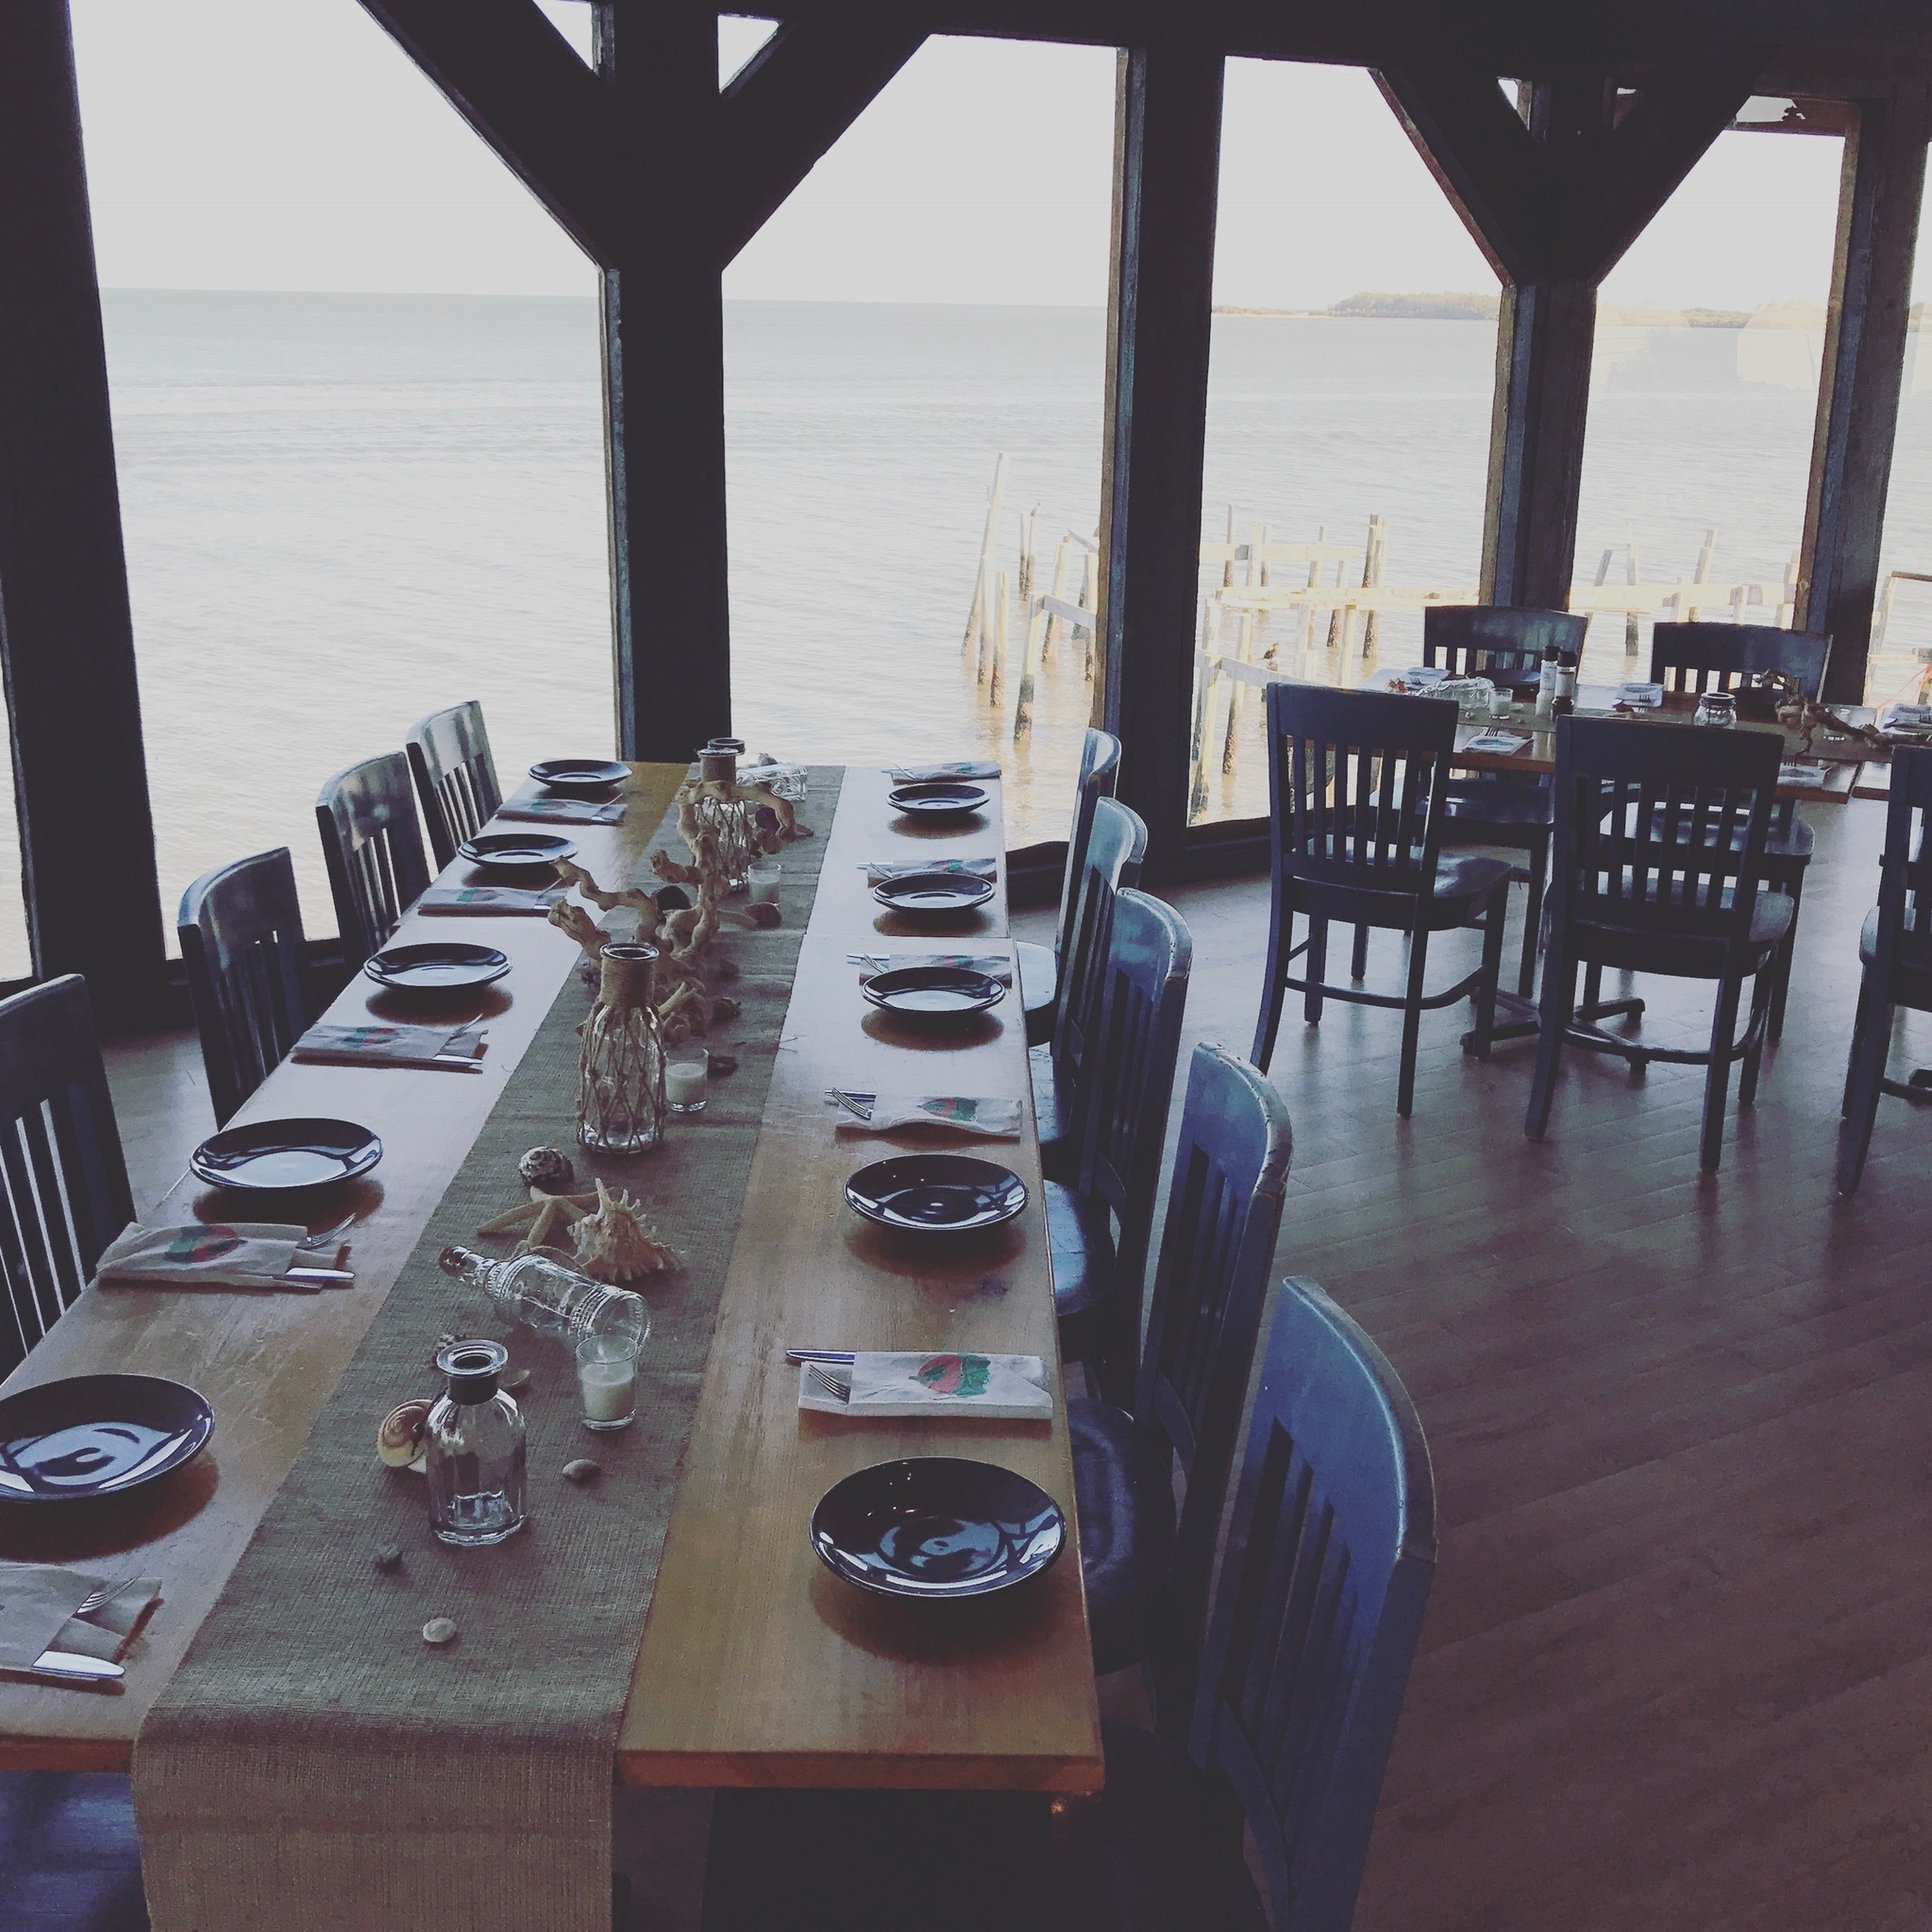 Private Events - 83 West and 29 North at 83 West are the PREMIER locations for your next private event in Cedar Key! With the BEST views and atmosphere in Cedar Key, you and your guests are sure to have an amazing event! Private Events are recommended for groups of 25+ guests depending on the type of event! We can help you host anything from a business conference to a full wedding and reception! For detailed Information and pricing for private events, fill out the form below and our events manager will be in contact with you as soon as possible!